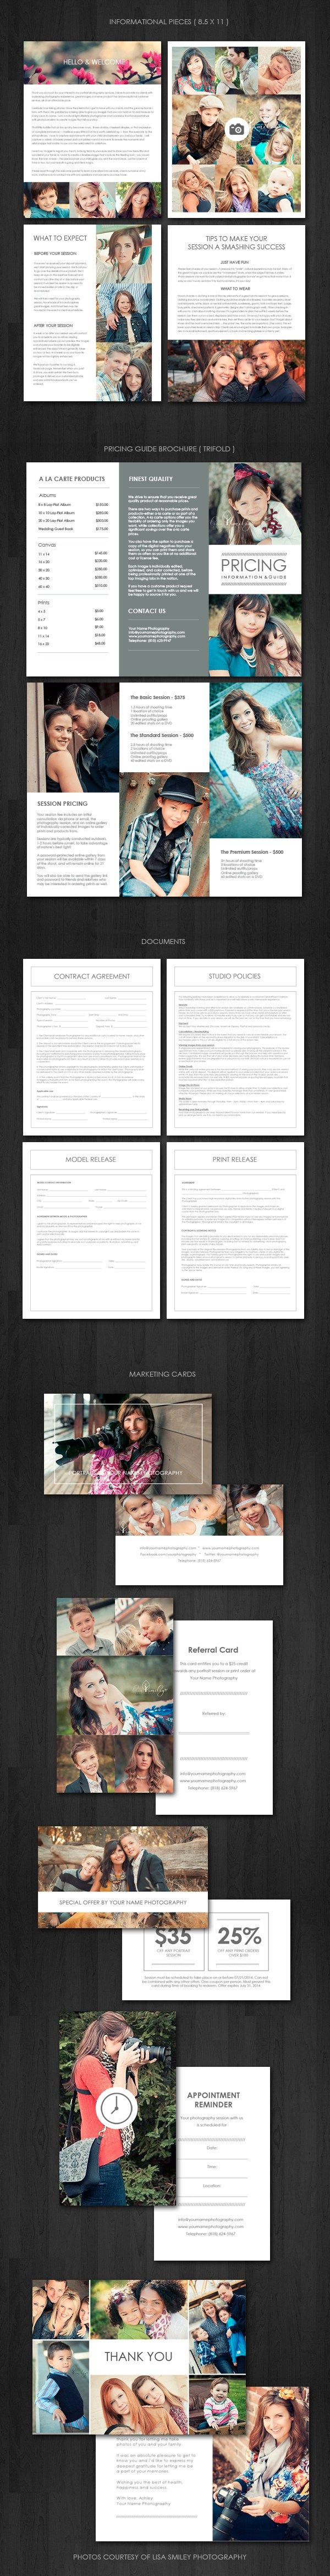 The Ultimate Portrait Photography Marketing Kit - Welcome Packet Templates -